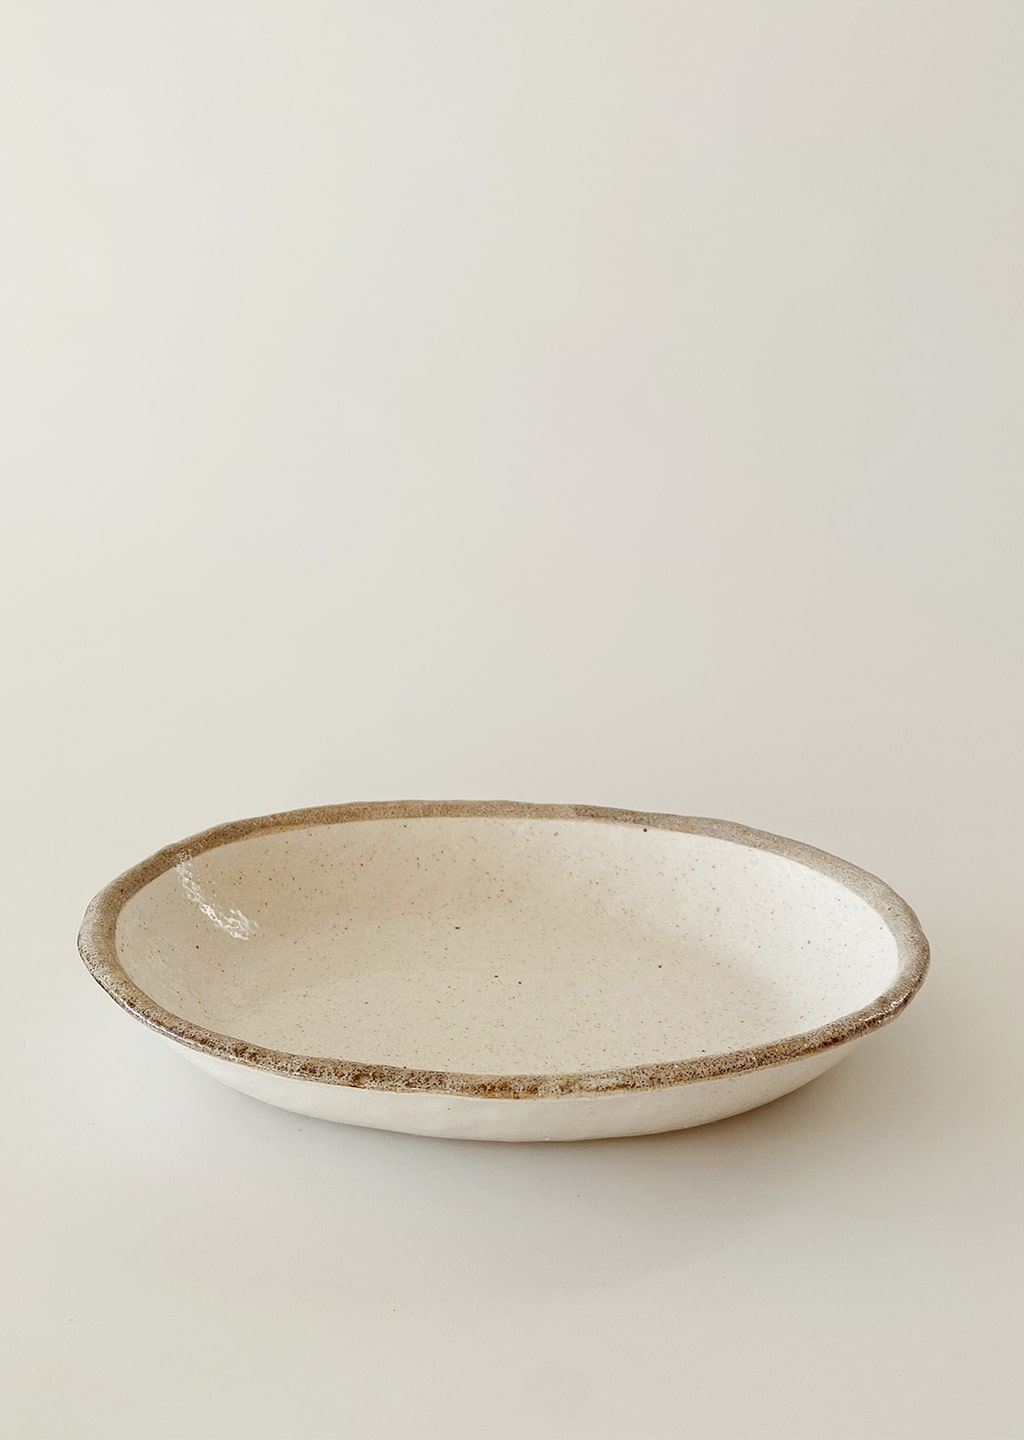 Shirokaratsu Ceramic Serving Dish